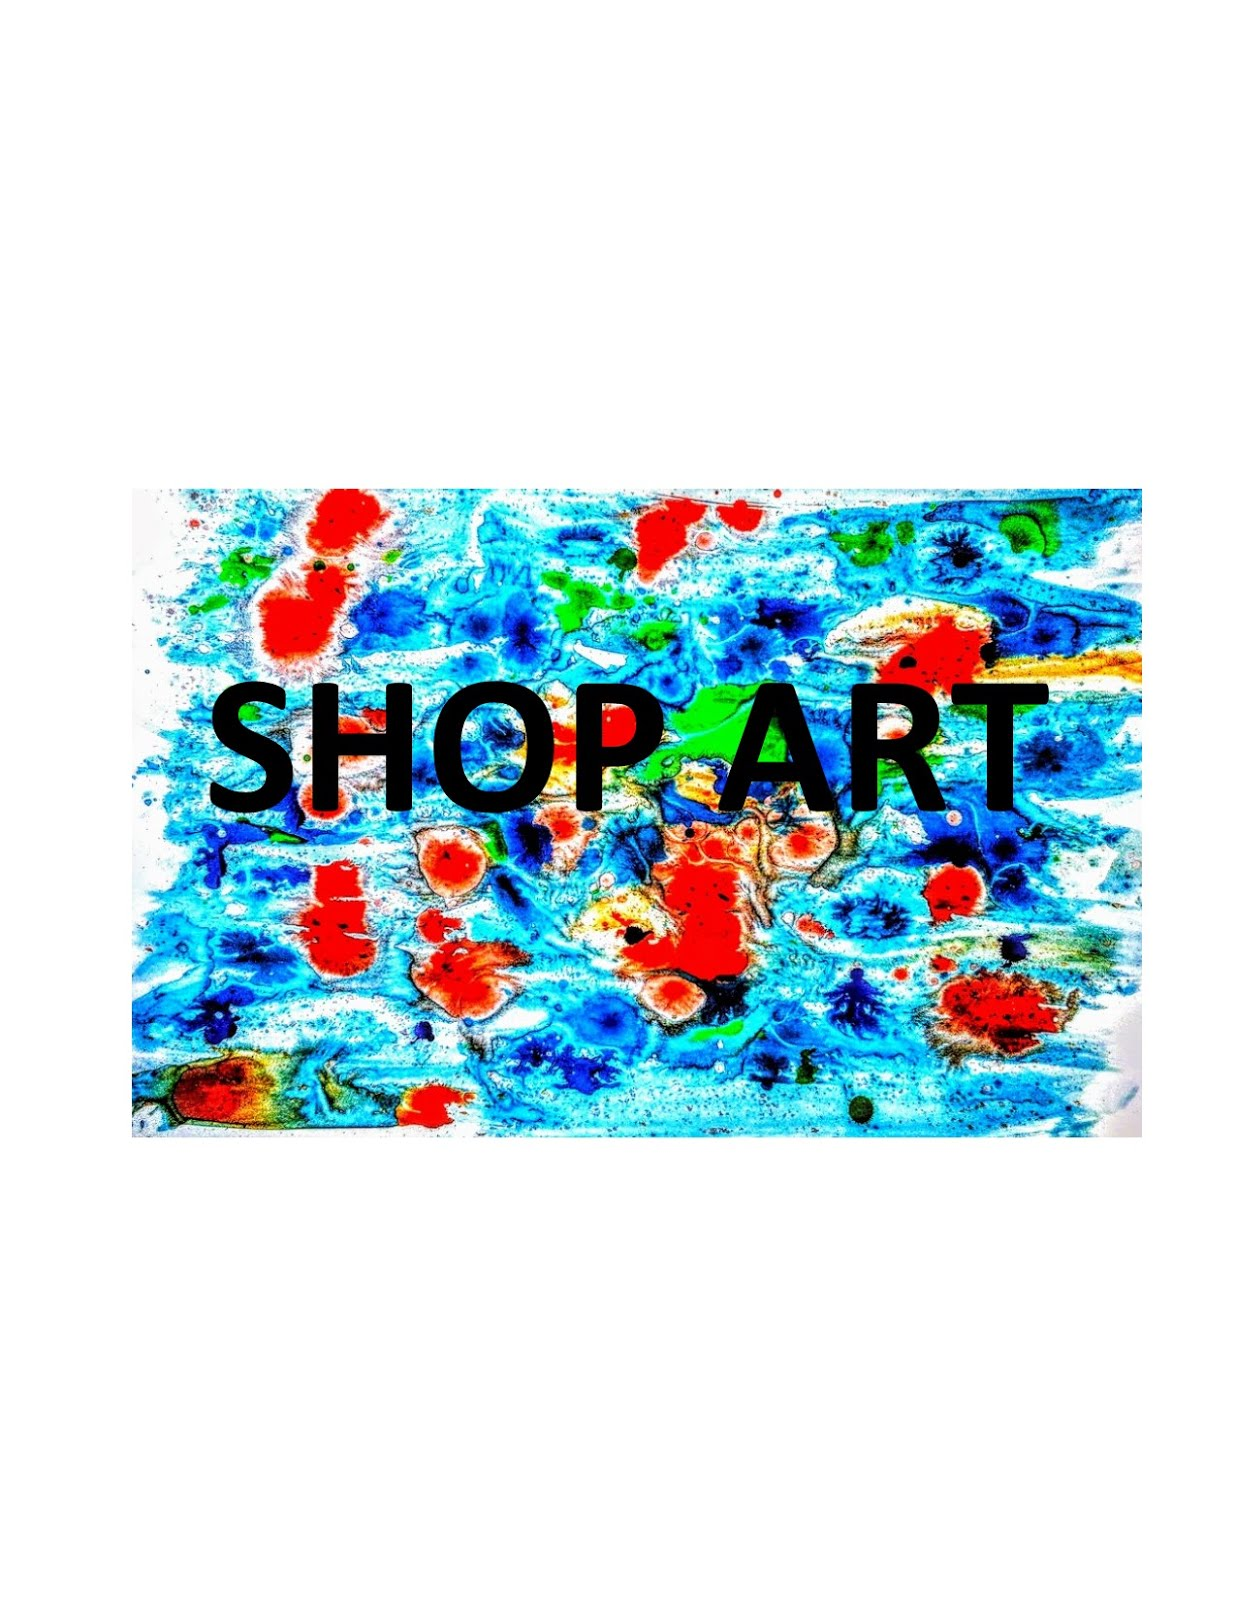 20% OFF ALL ART FOR THE HOME